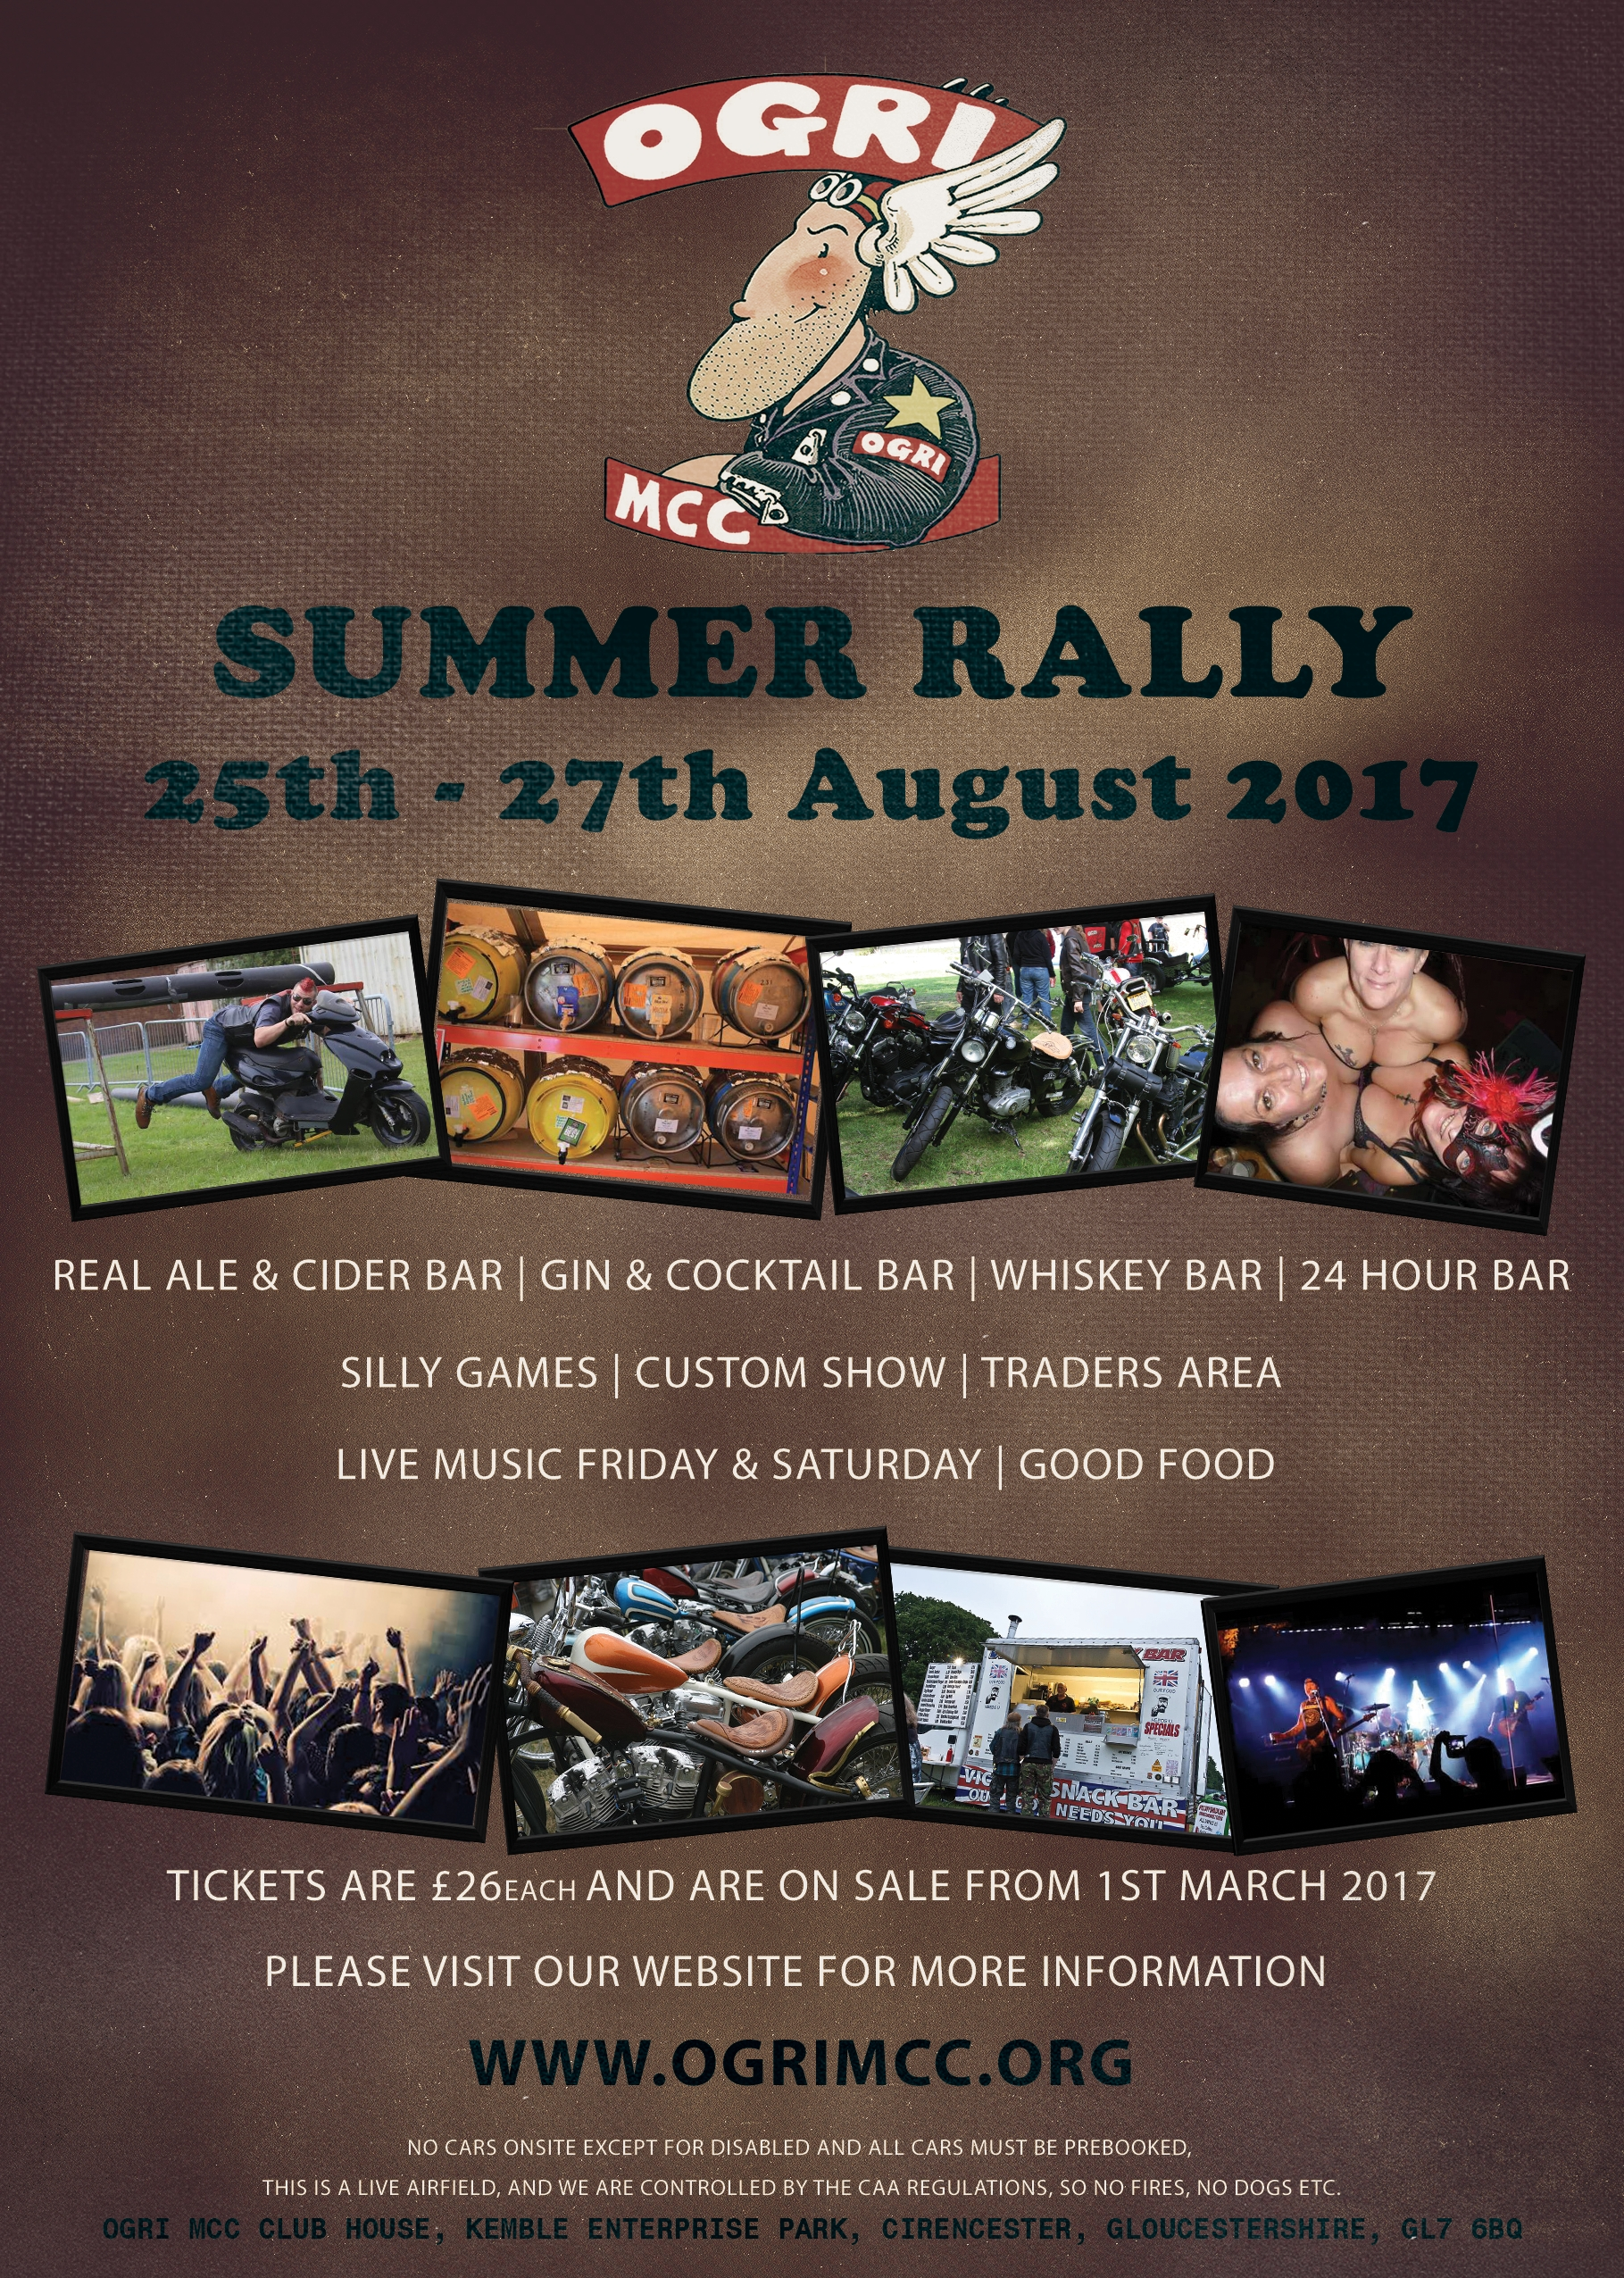 OGRI MCC Summer Rally 2017 Flyer